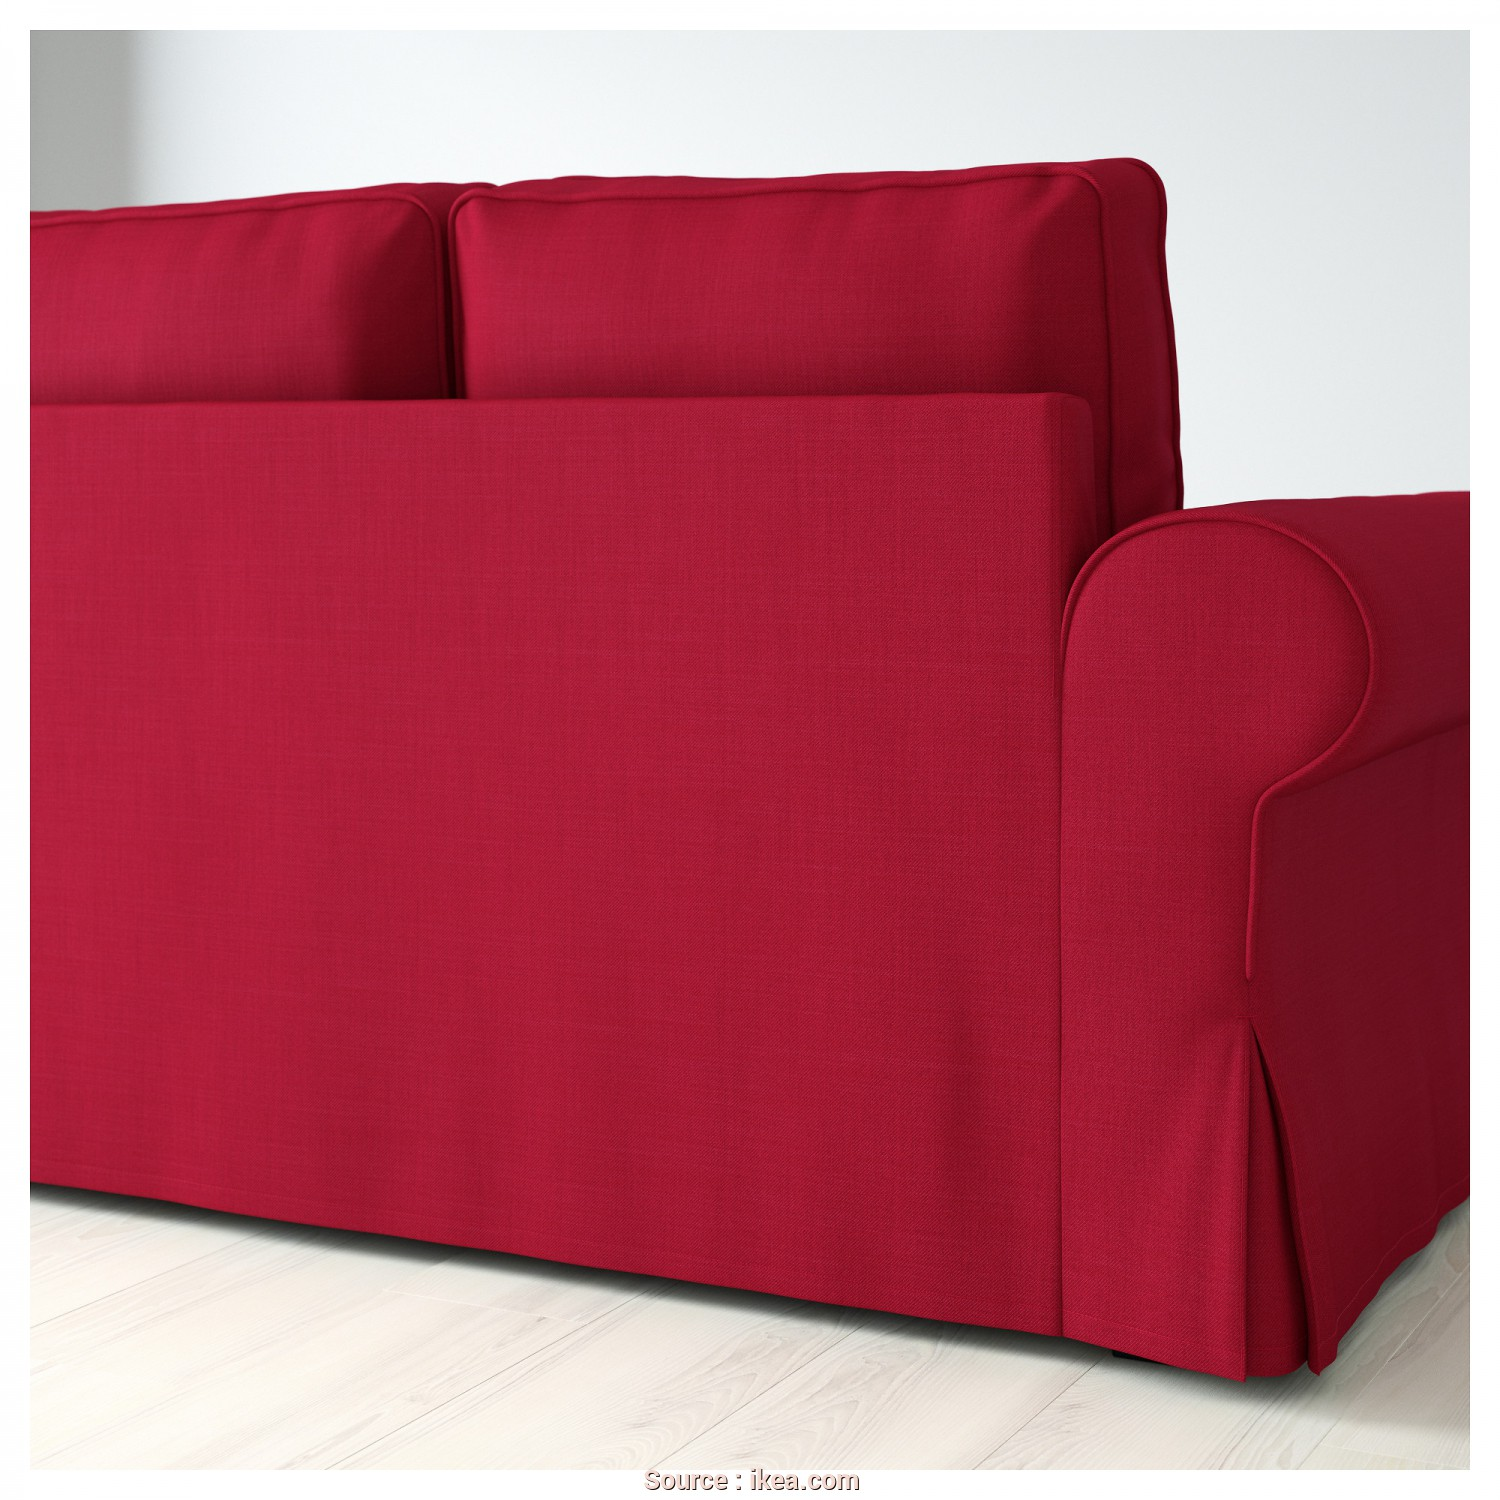 Ikea Backabro Willhaben, Migliore BACKABRO Sofa, With Chaise Longue Nordvalla Red